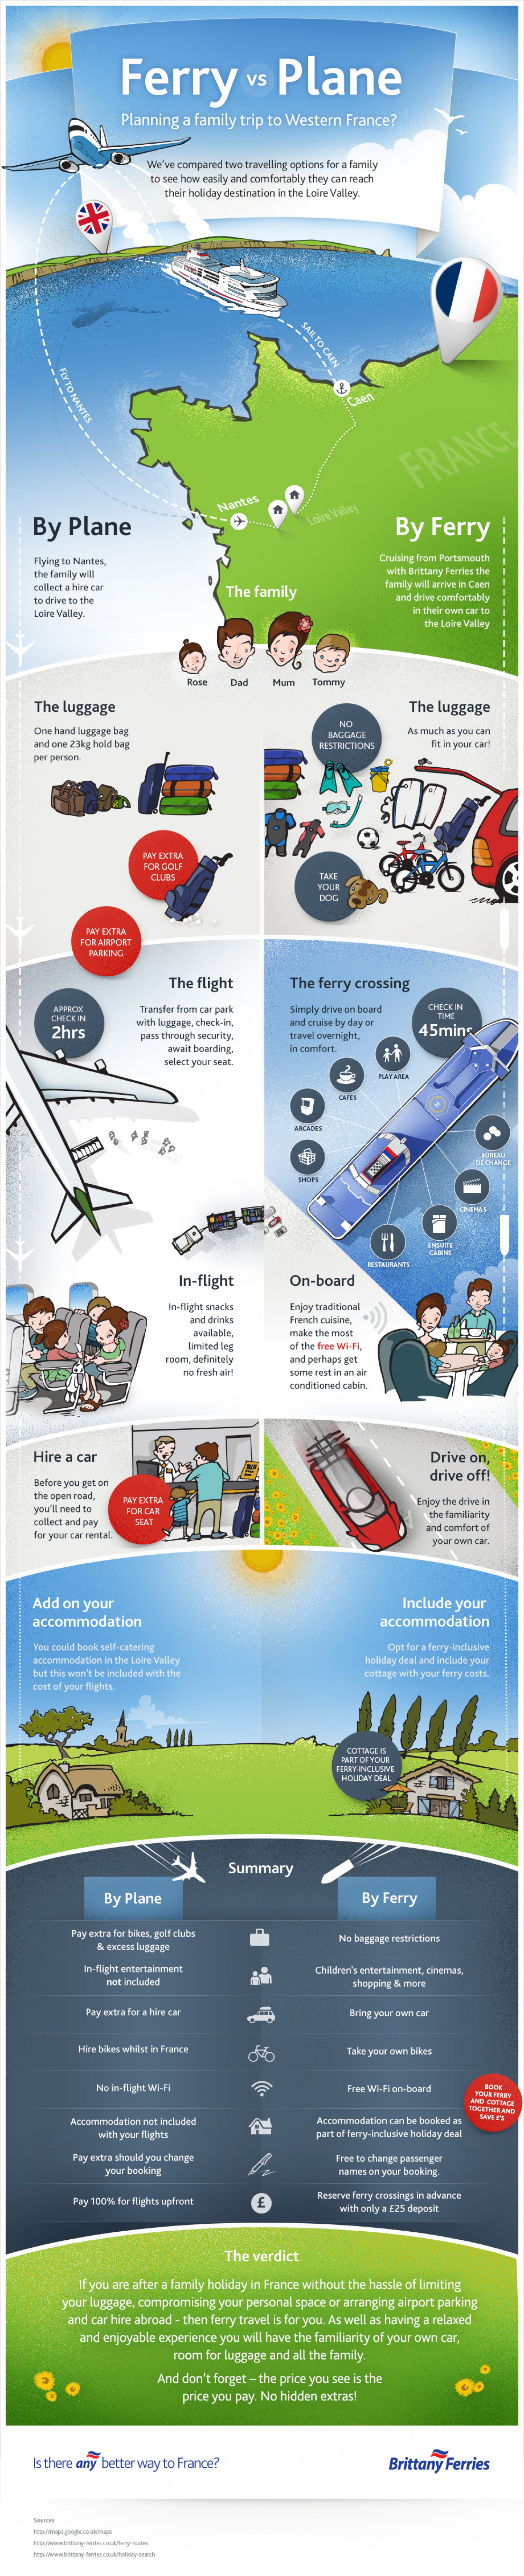 Ferry vs Plane: Which Gets Your Vote? Infographic